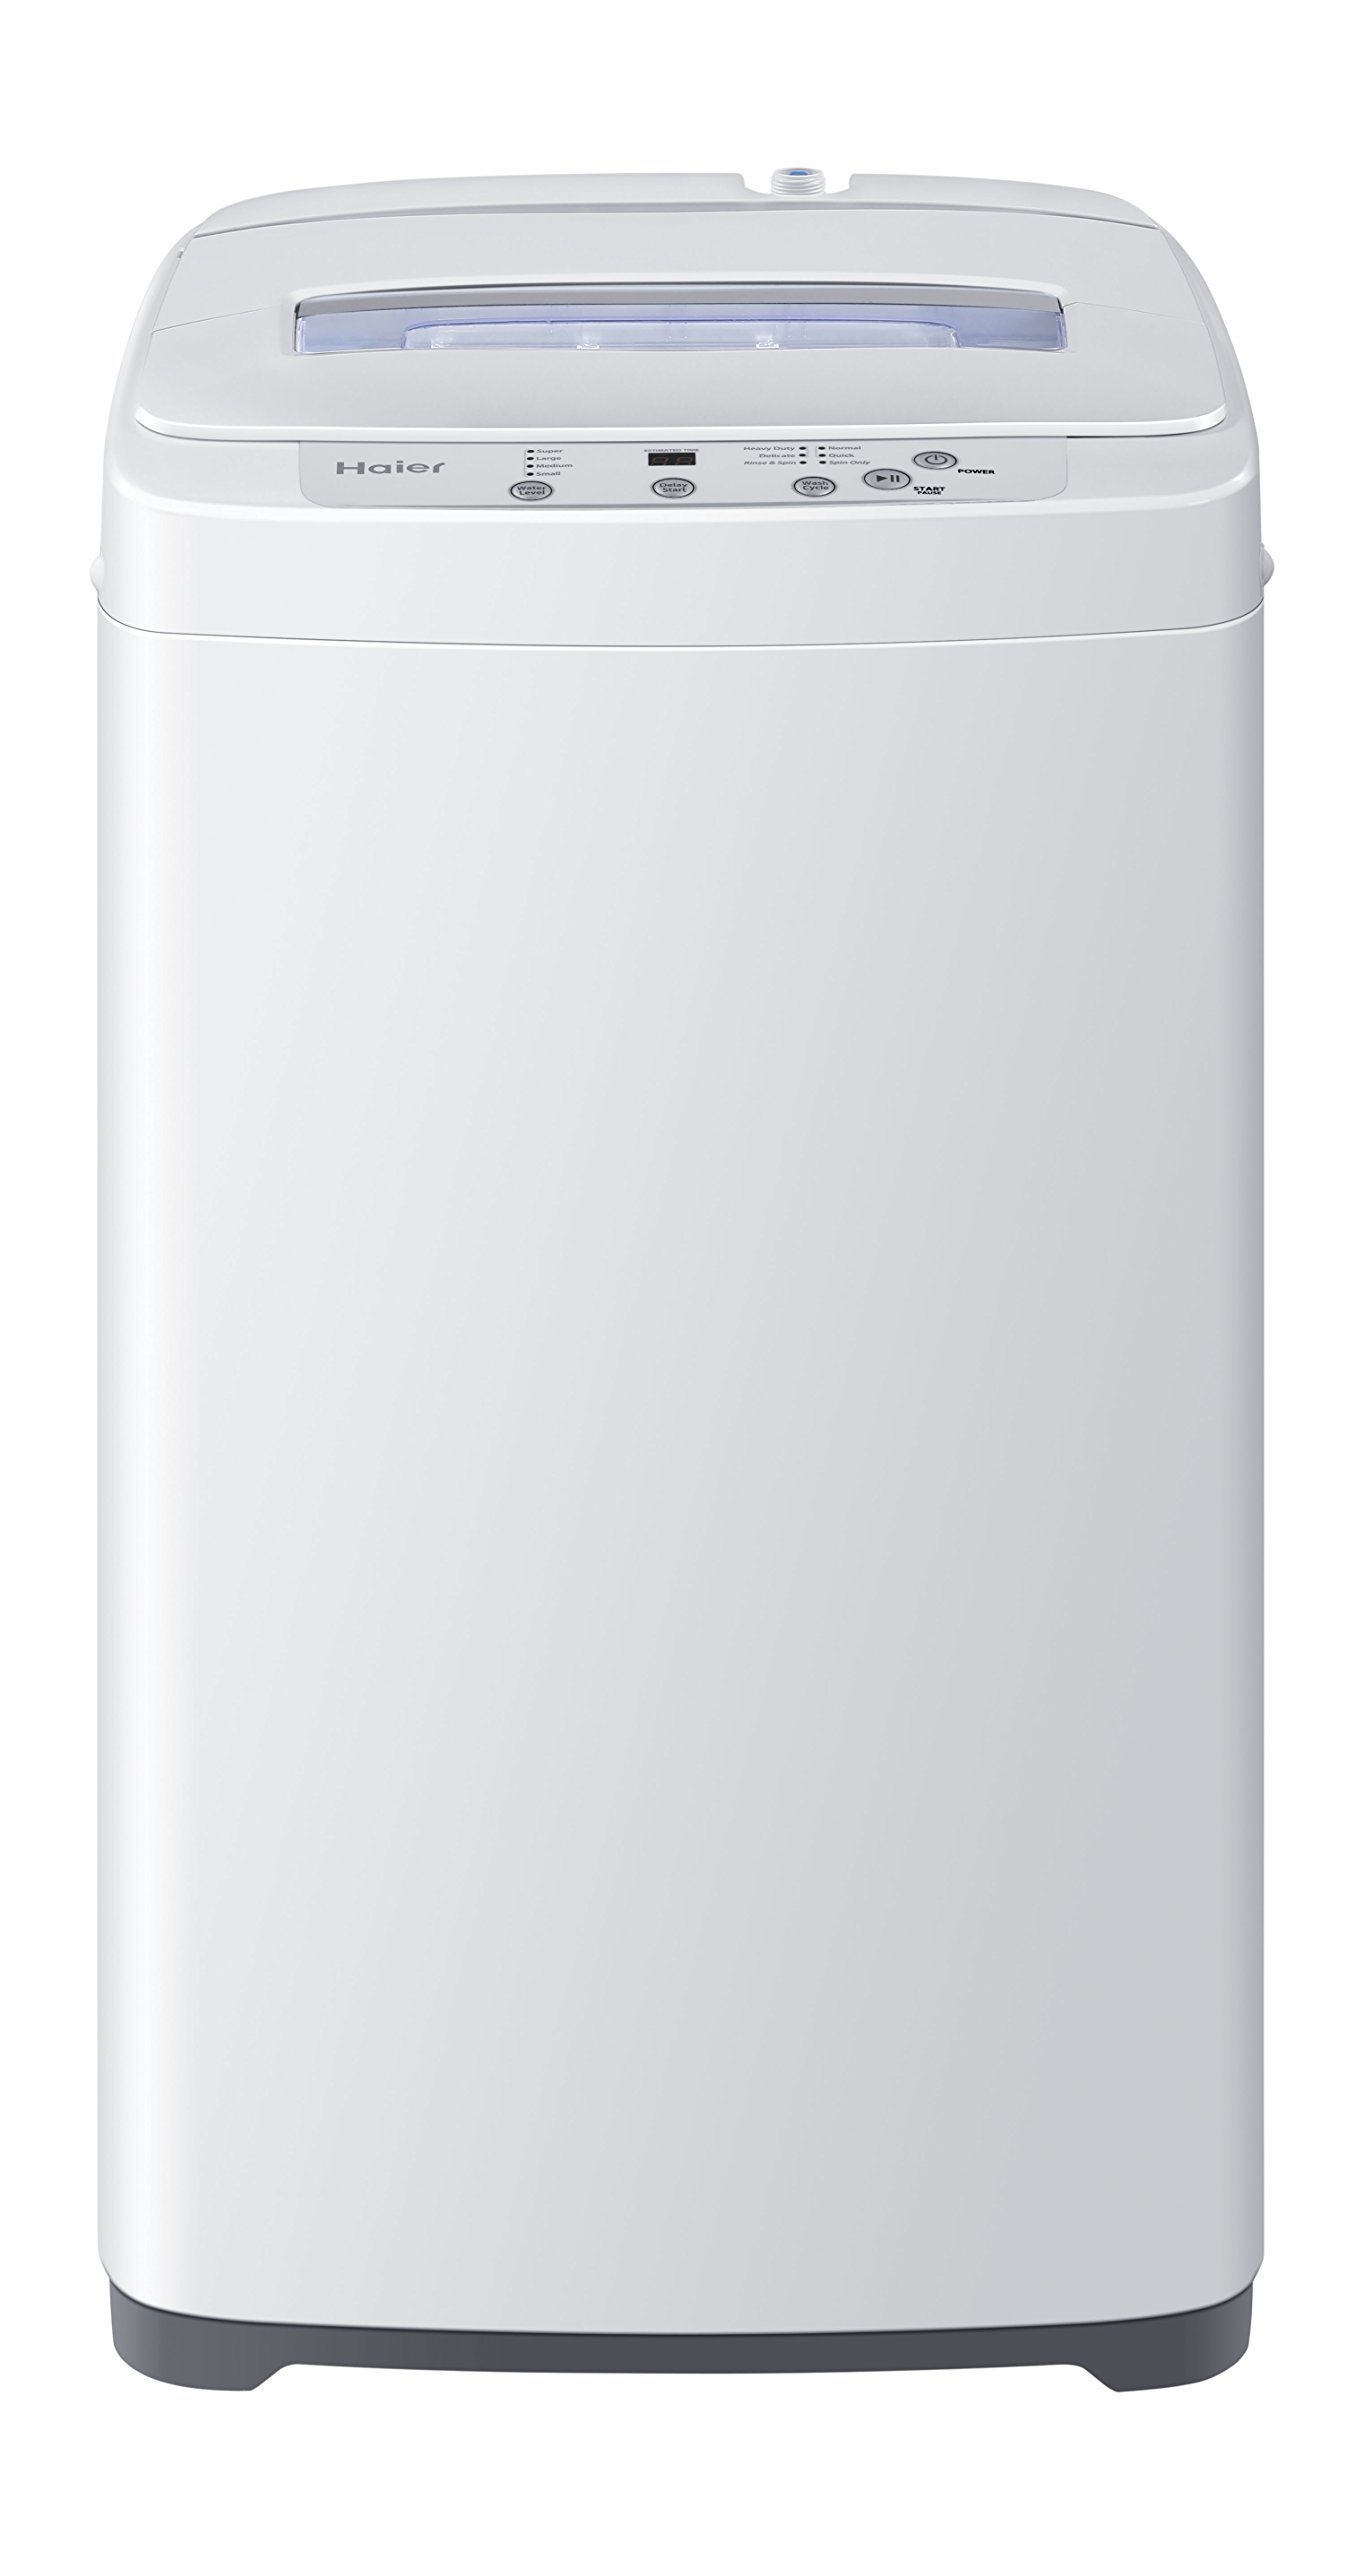 Buy Haier HLP24E 1.5 Cubic Foot Portable Washer With ...